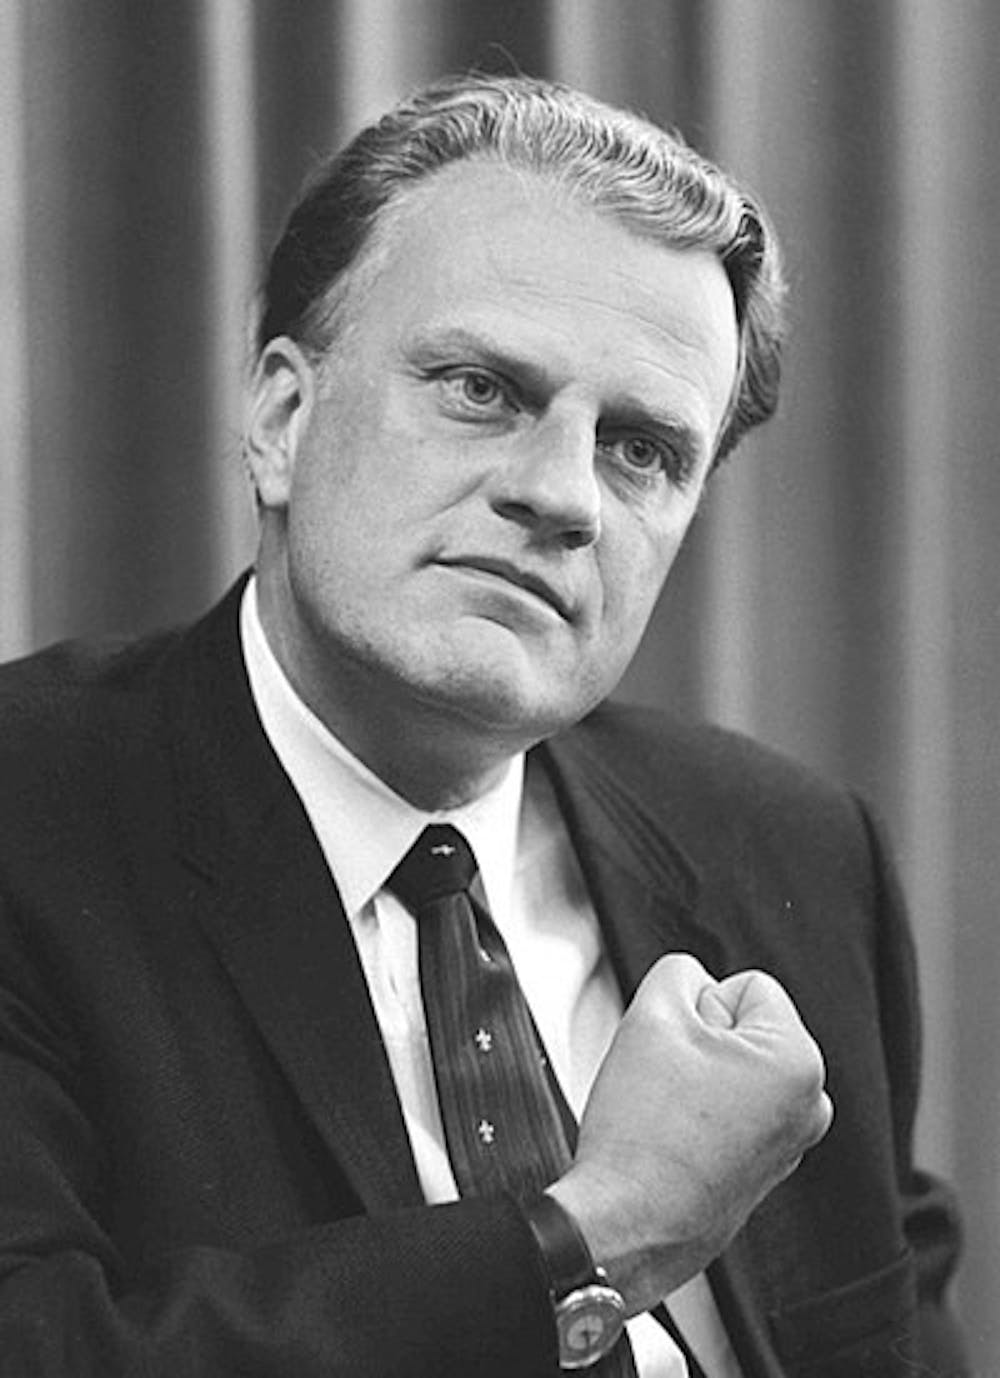 400px-billy-graham-bw-photo-april-11-1966